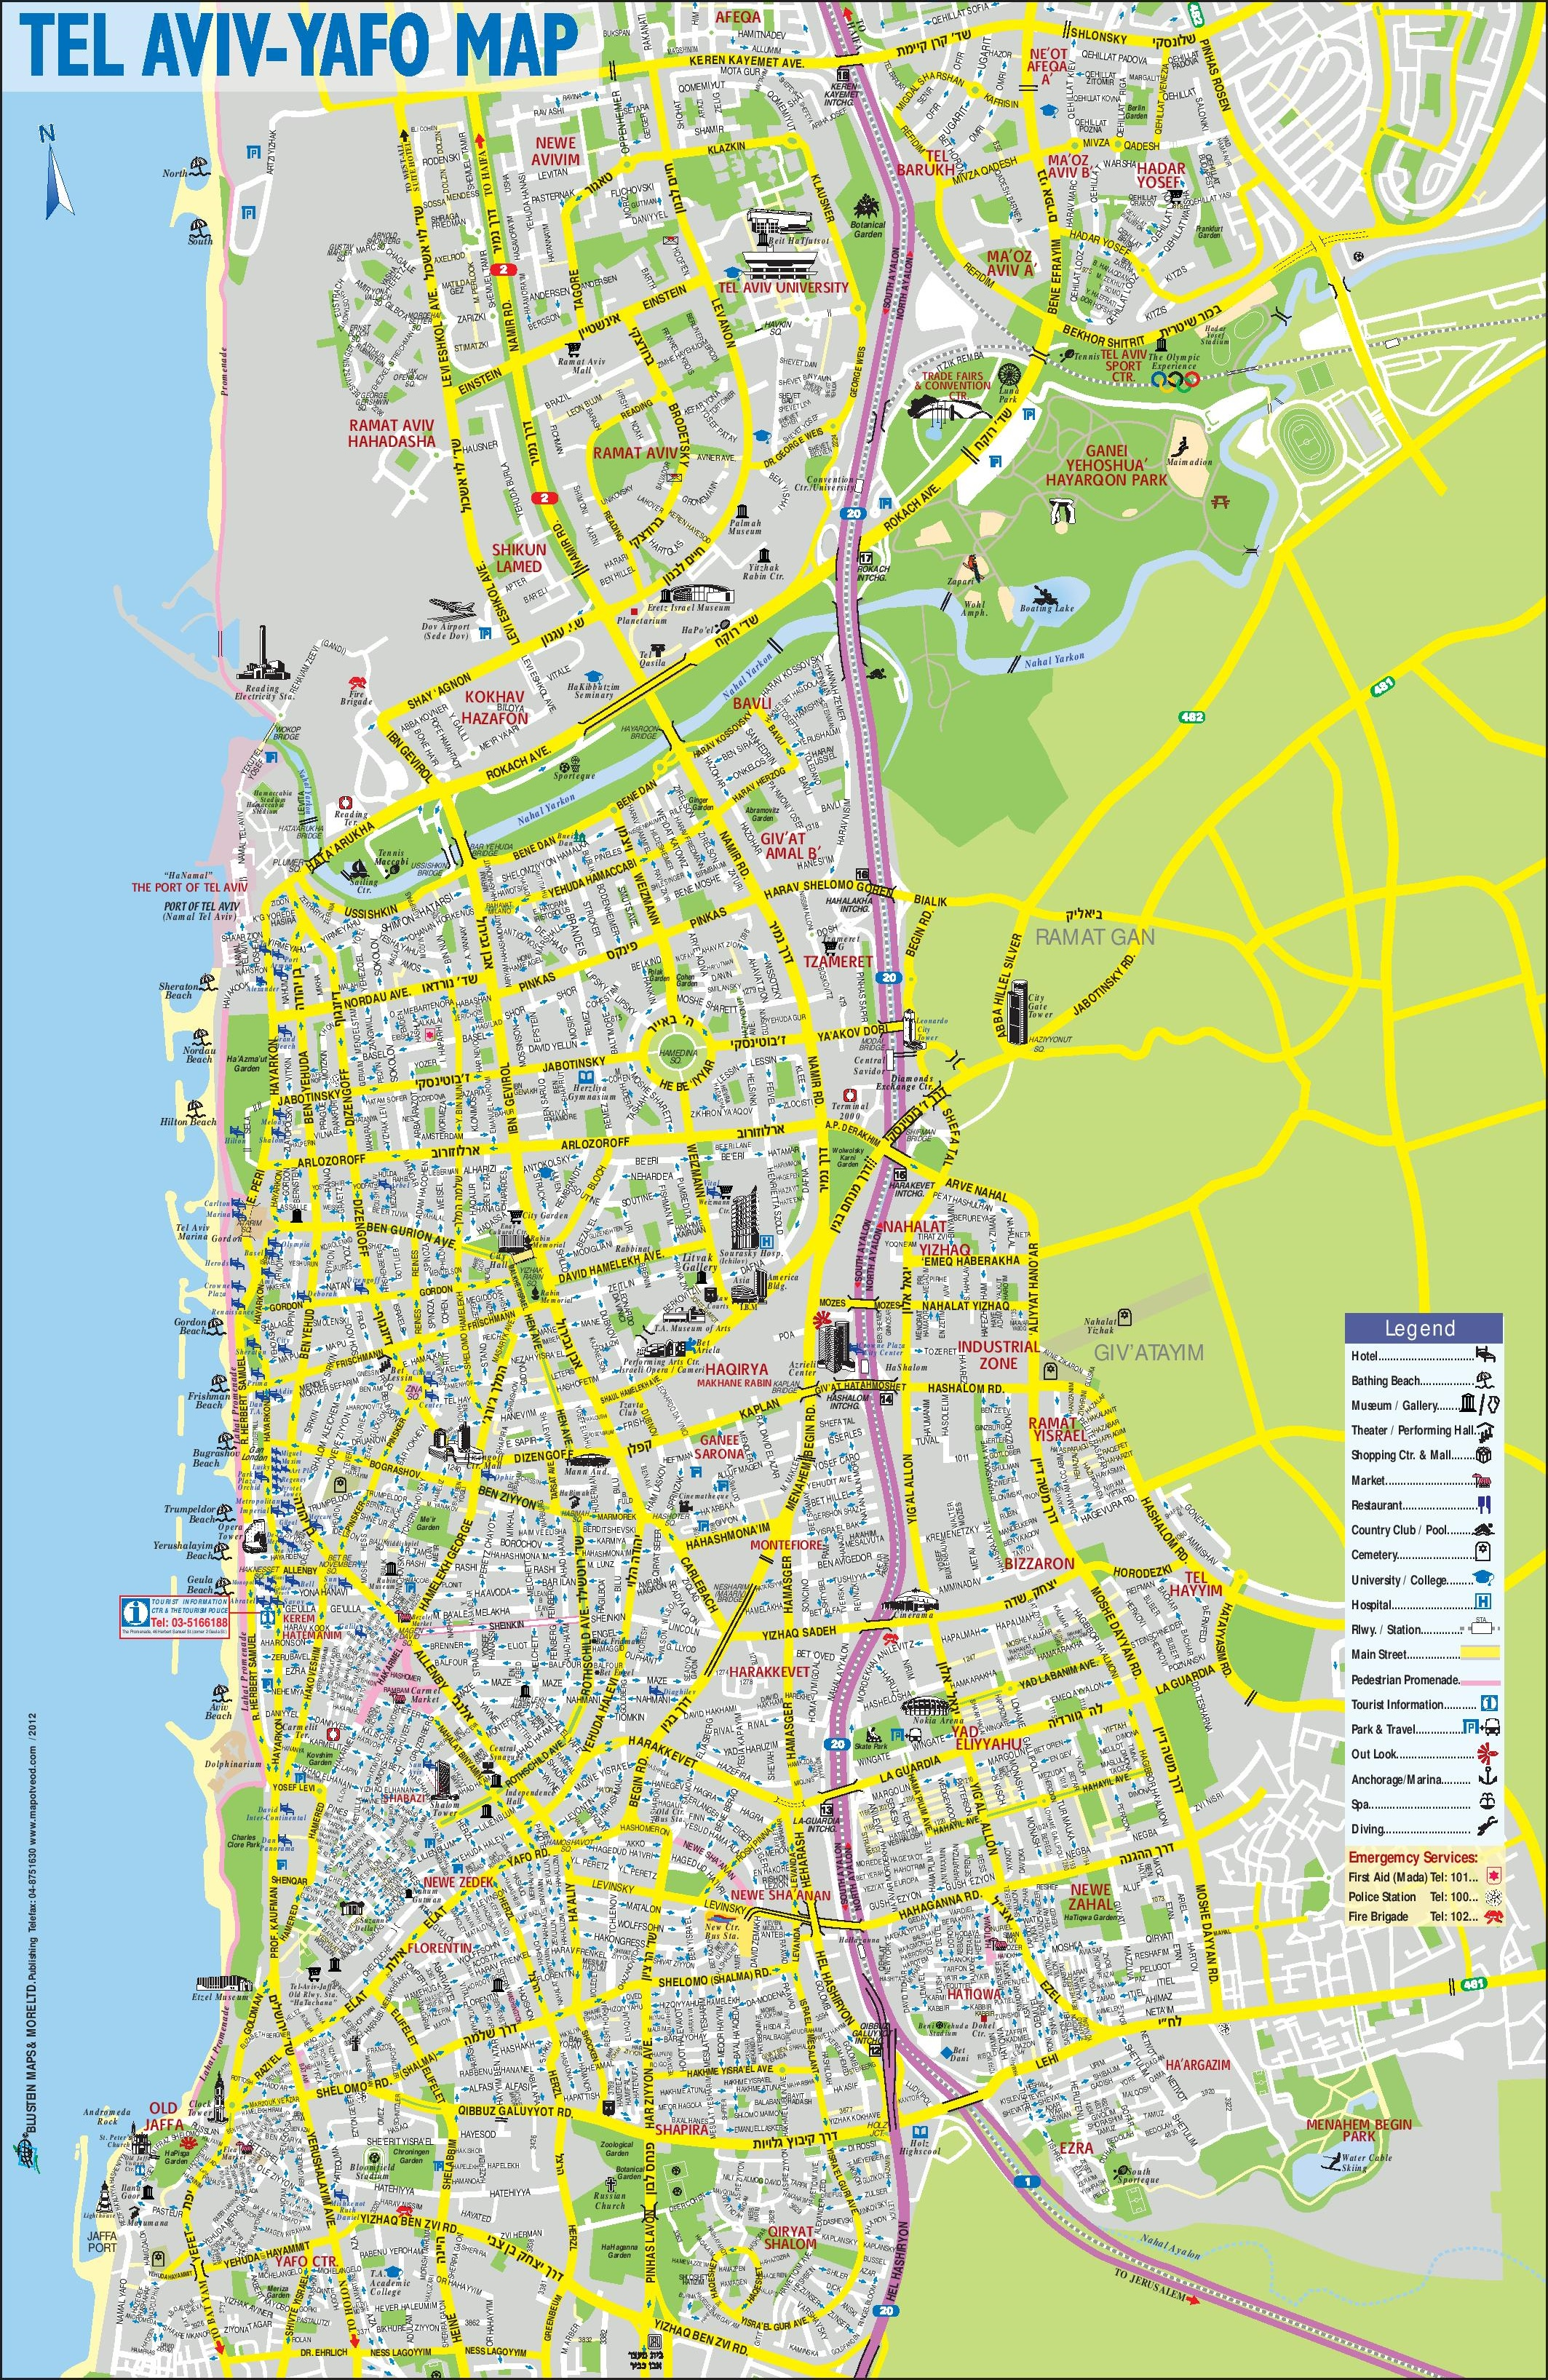 Tel Aviv sightseeing map